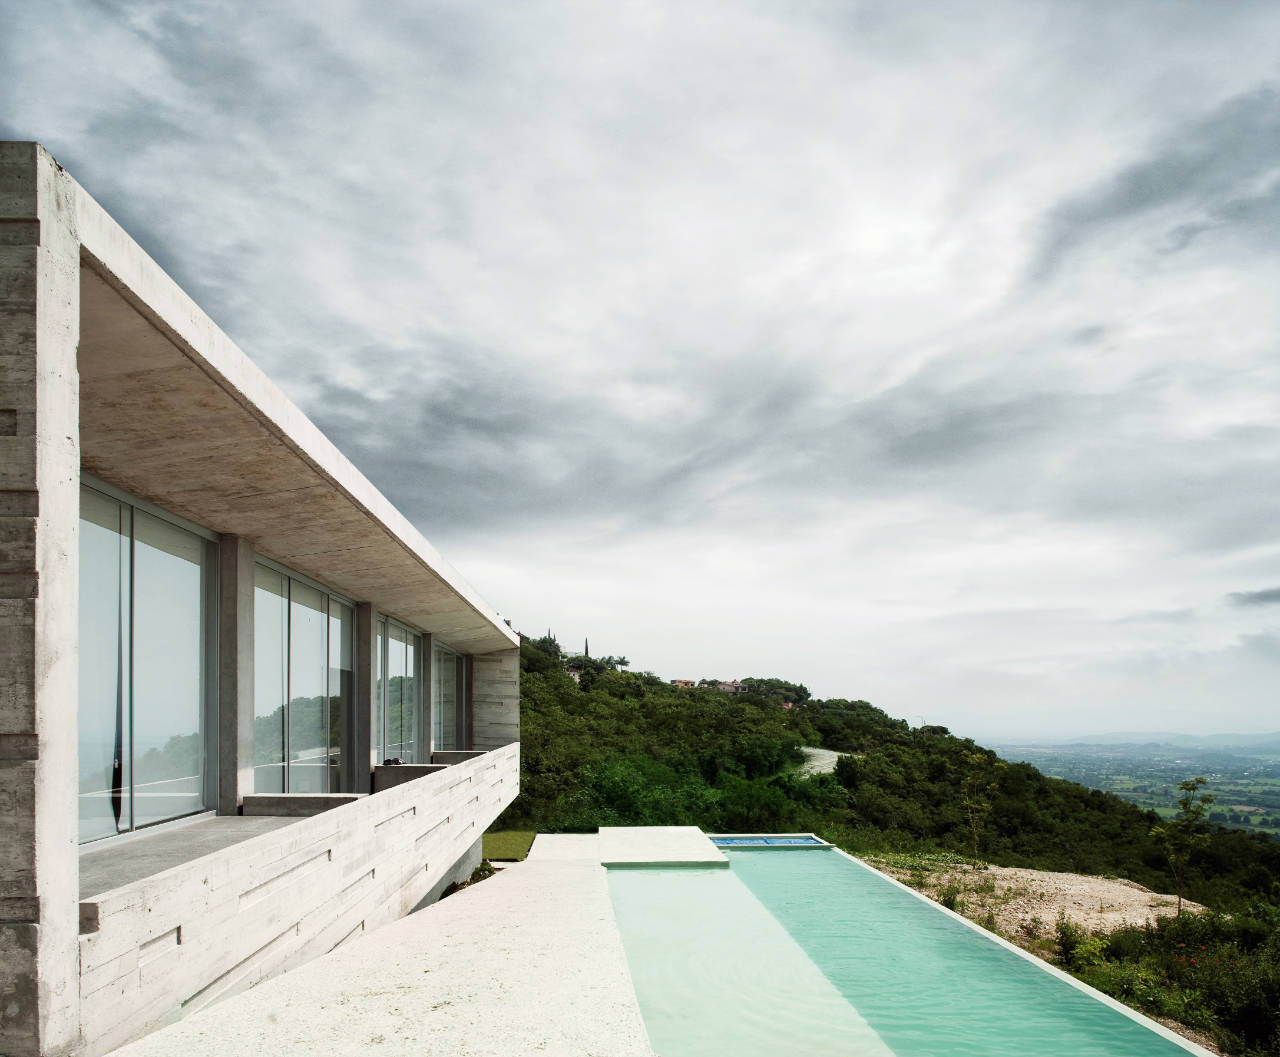 Widescreen House / RZERO, © Pedro Iriart